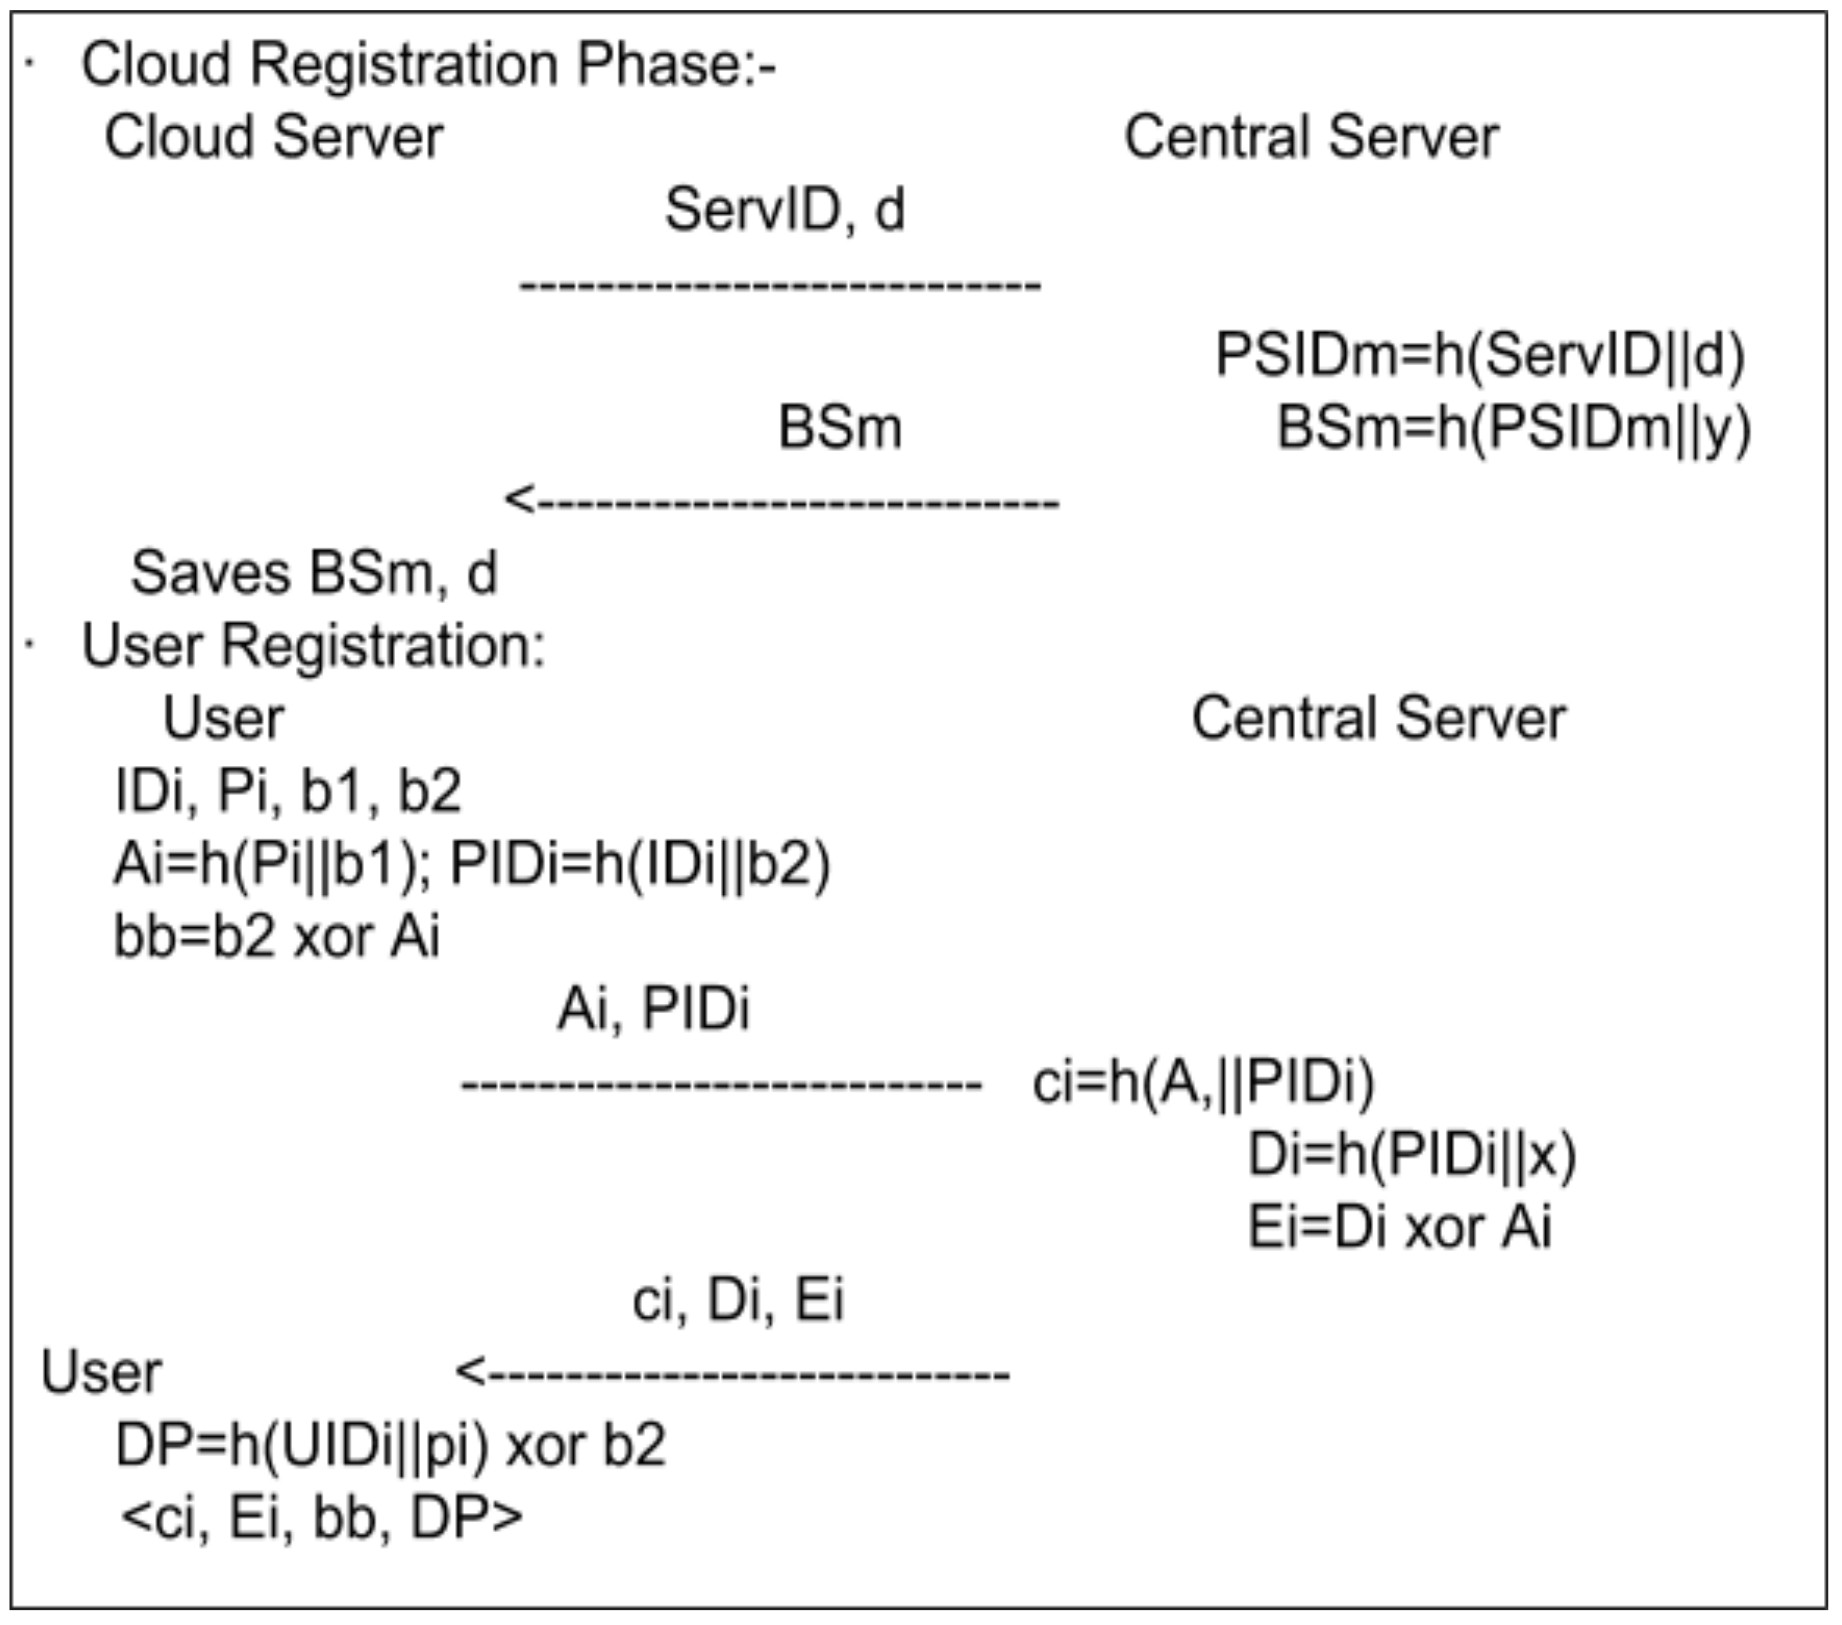 Figure 7: Server and User Registration